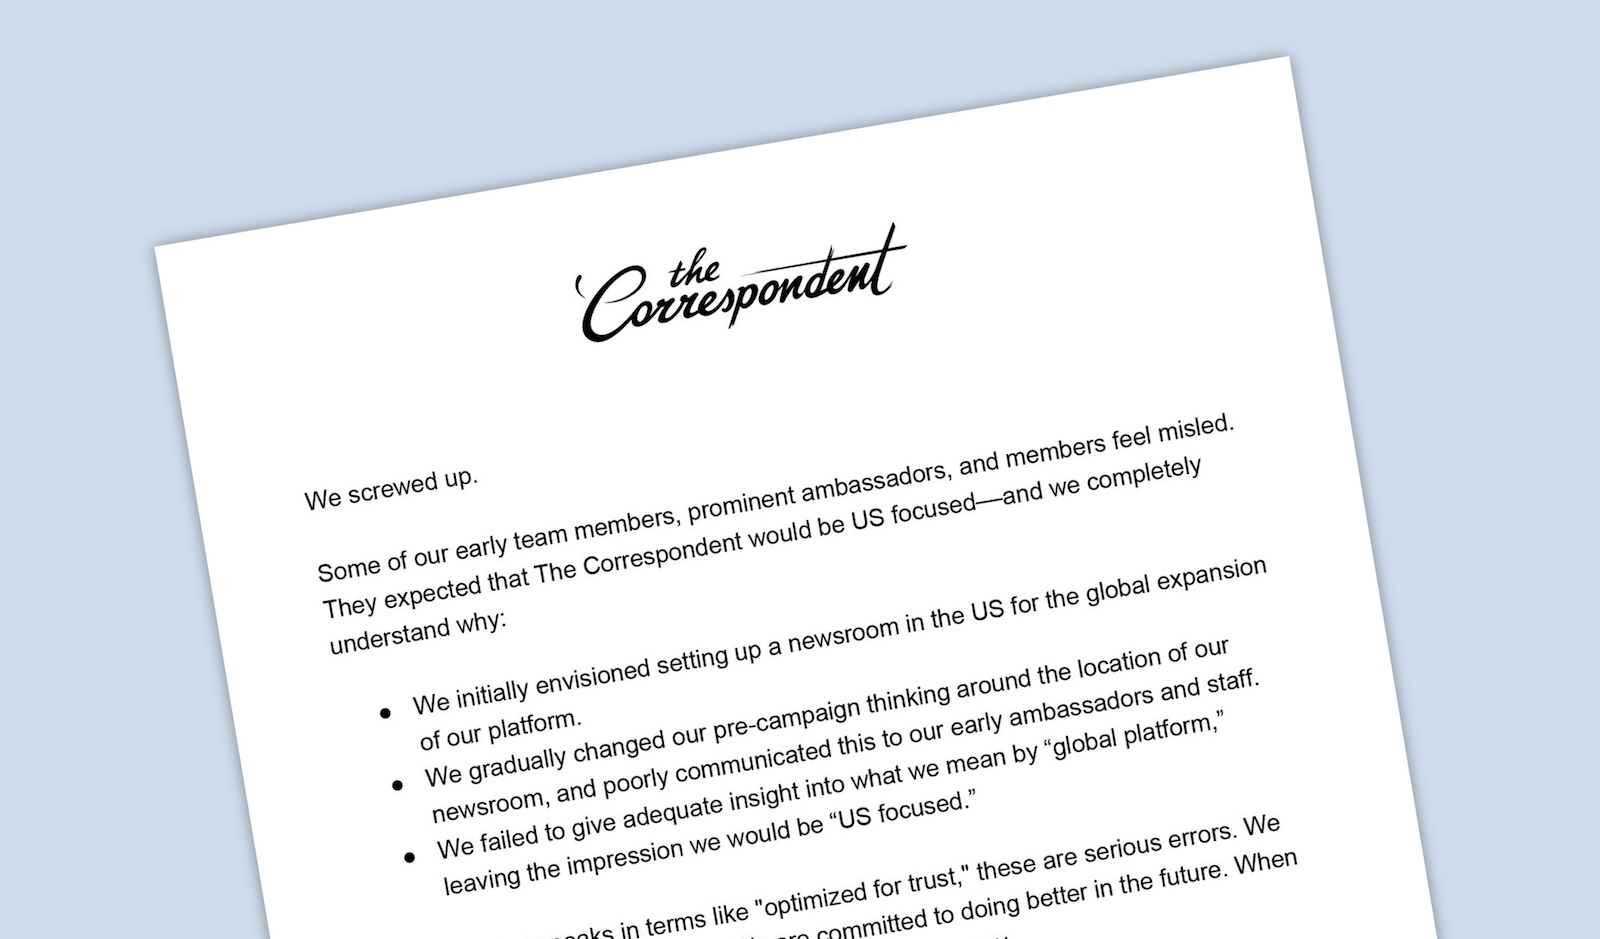 The Correspondent apologizes as Nate Silver, David Simon, and Baratunde Thurston speak out